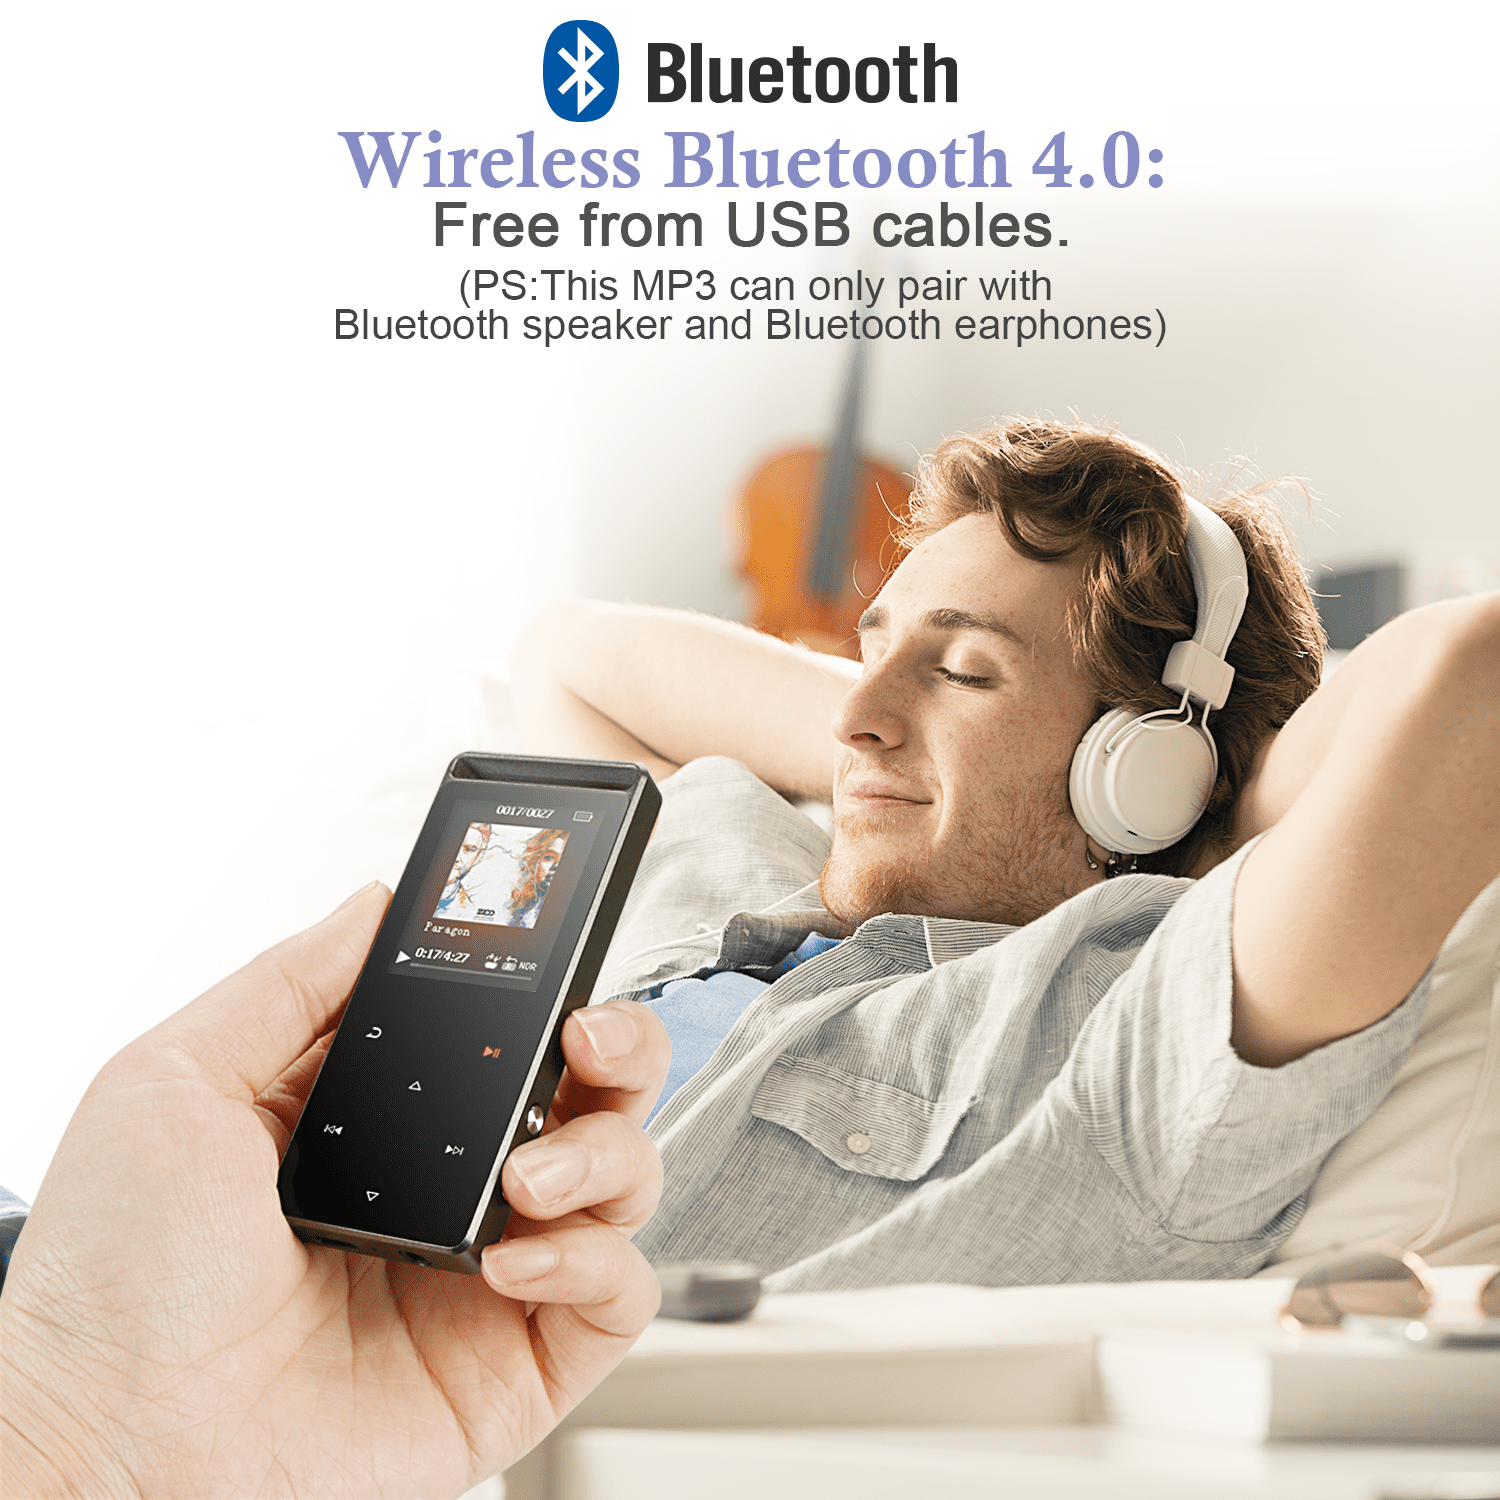 AGPTEK 16GB Bluetooth MP3 Player Touch Screen with FM/ Voice